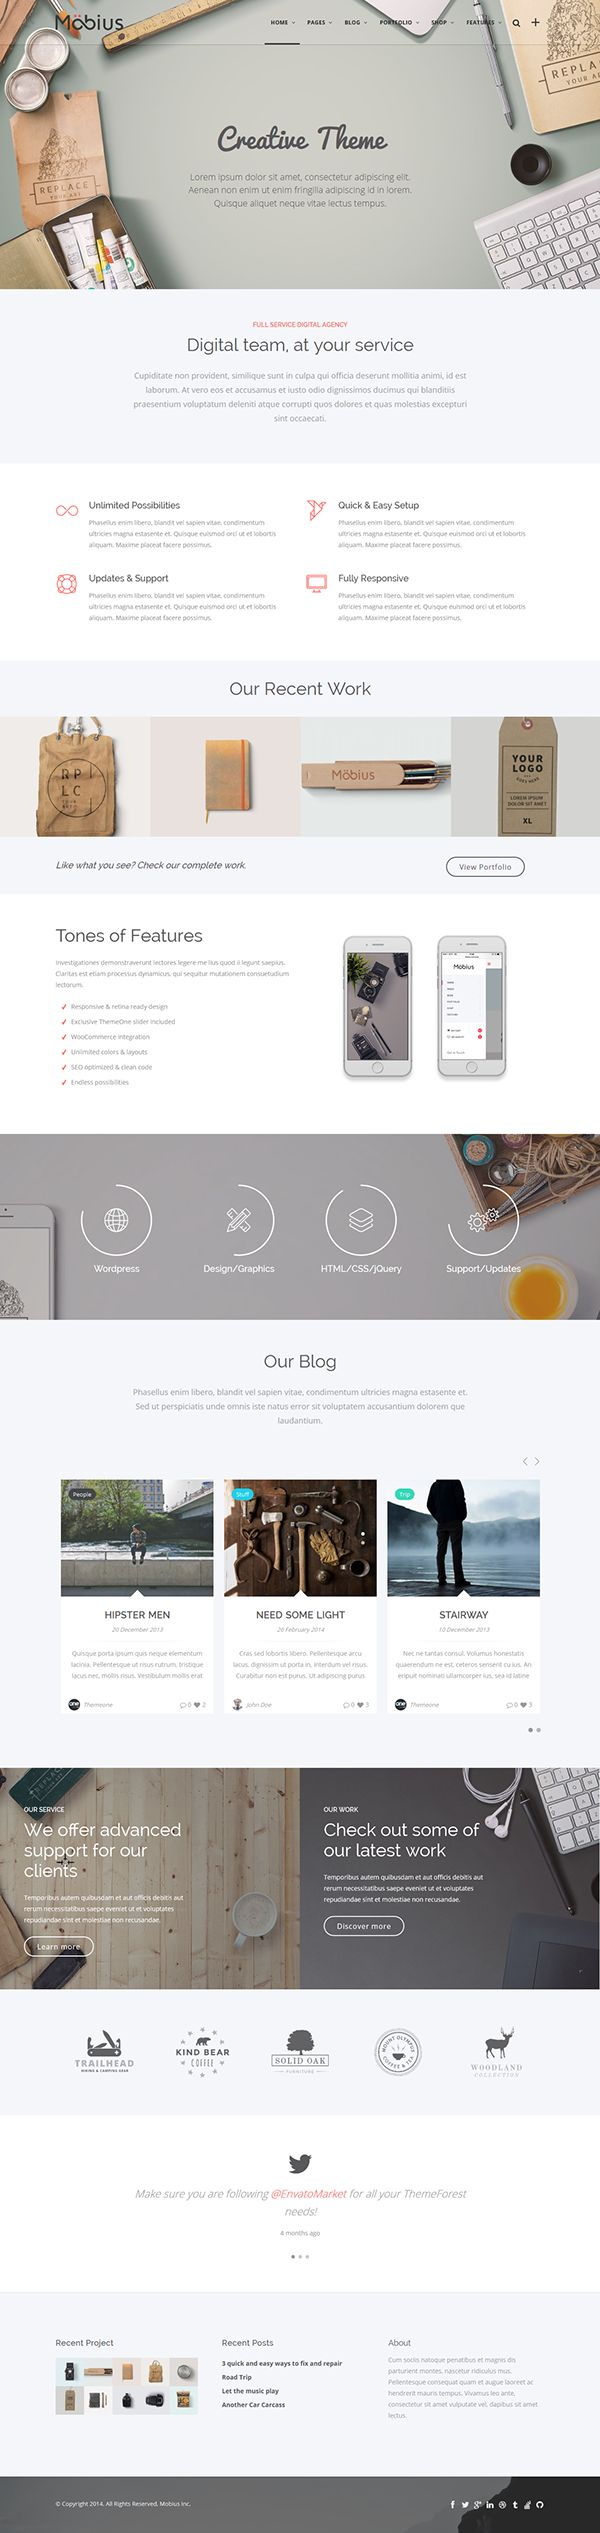 Mobius is a multipurpose, clean, retina ready and fully responsive WordPress Theme. It is suited for any kind of website such as business and corporate sites, e-shops, agencies, creative portfolio, blog and photograph sites.